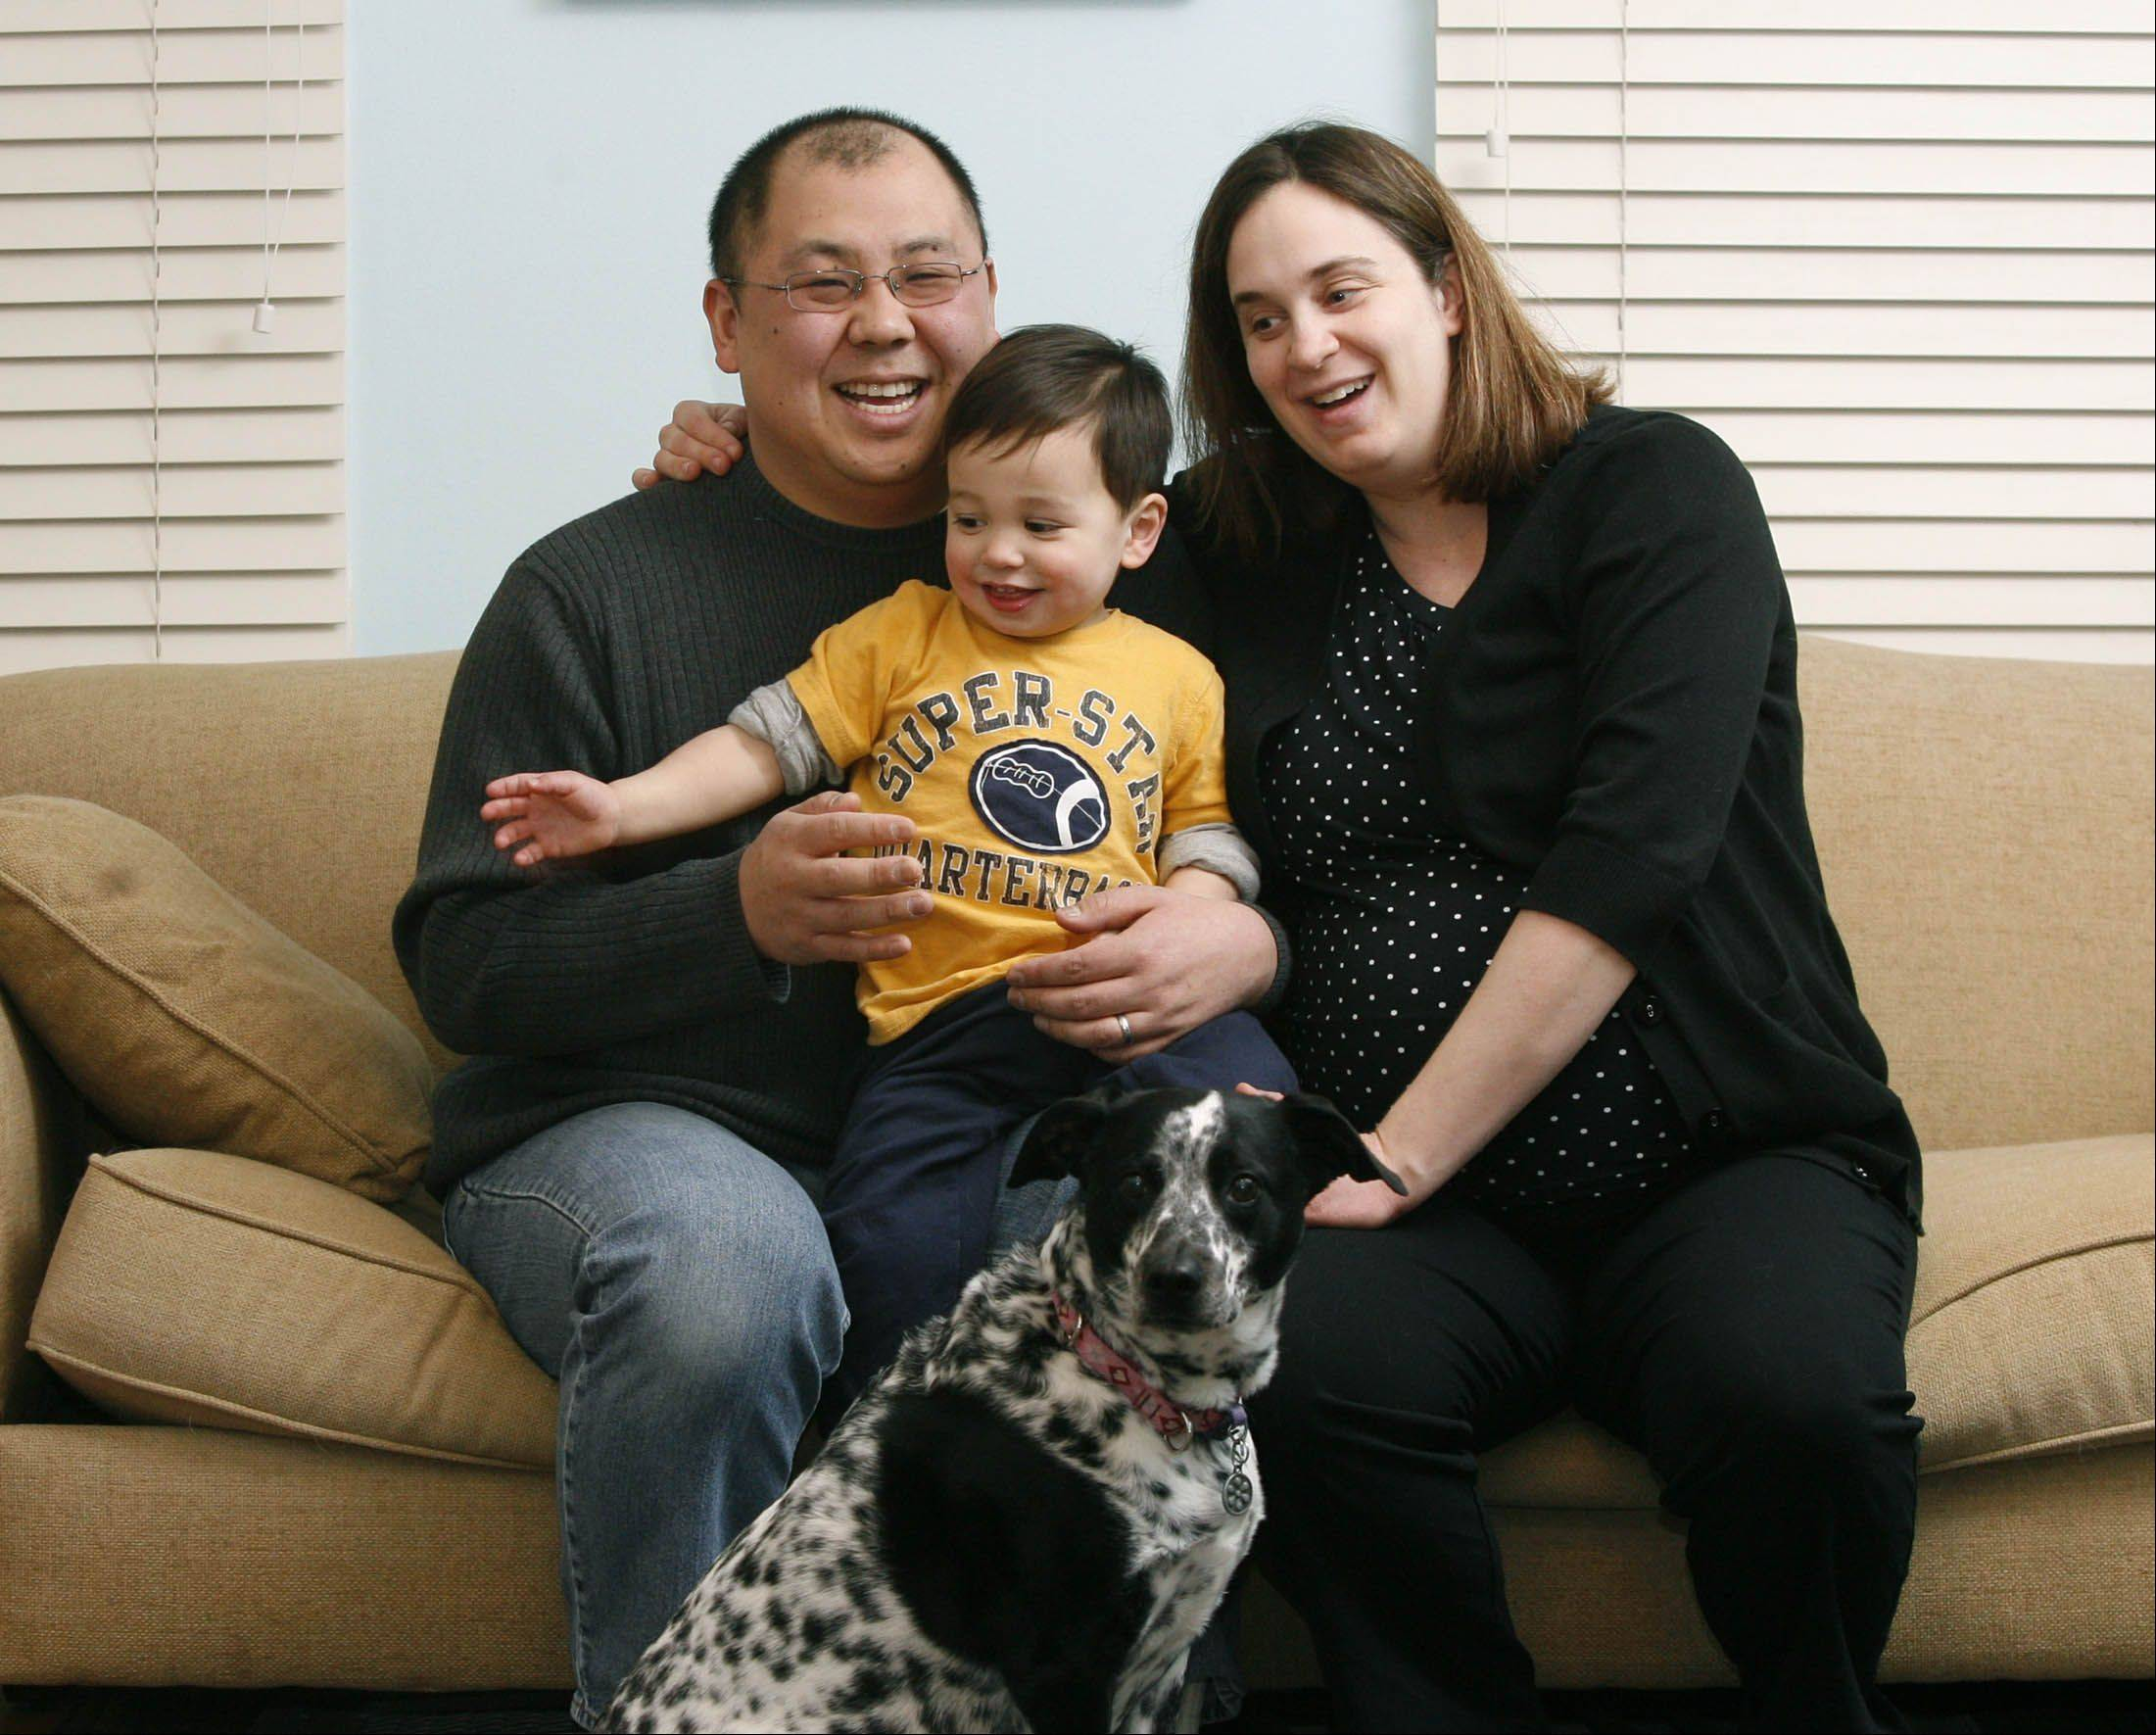 Daniel White/dwhite@dailyherald.com Edward and Lynne Shim of Roselle decided to have their baby induced on leap day. Their newborn daughter will be shared with their son Will, and dog Edie.